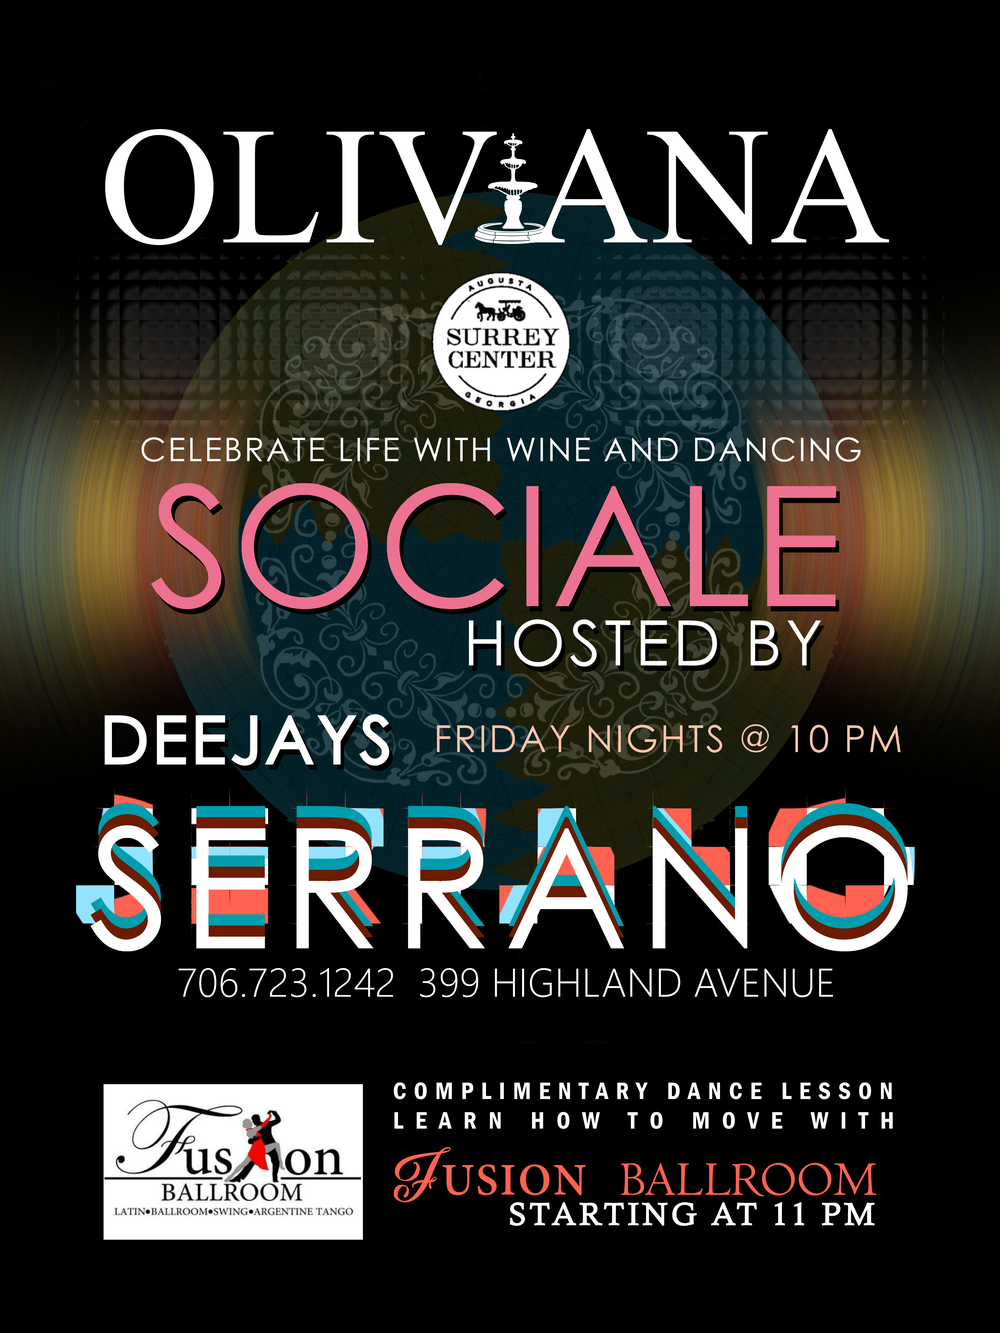 JOIN US ON FRIDAY NIGHTS AT OLIVIANA - Paco and his brother team up to share a blend of Latin and House music with all the dancers in mind.